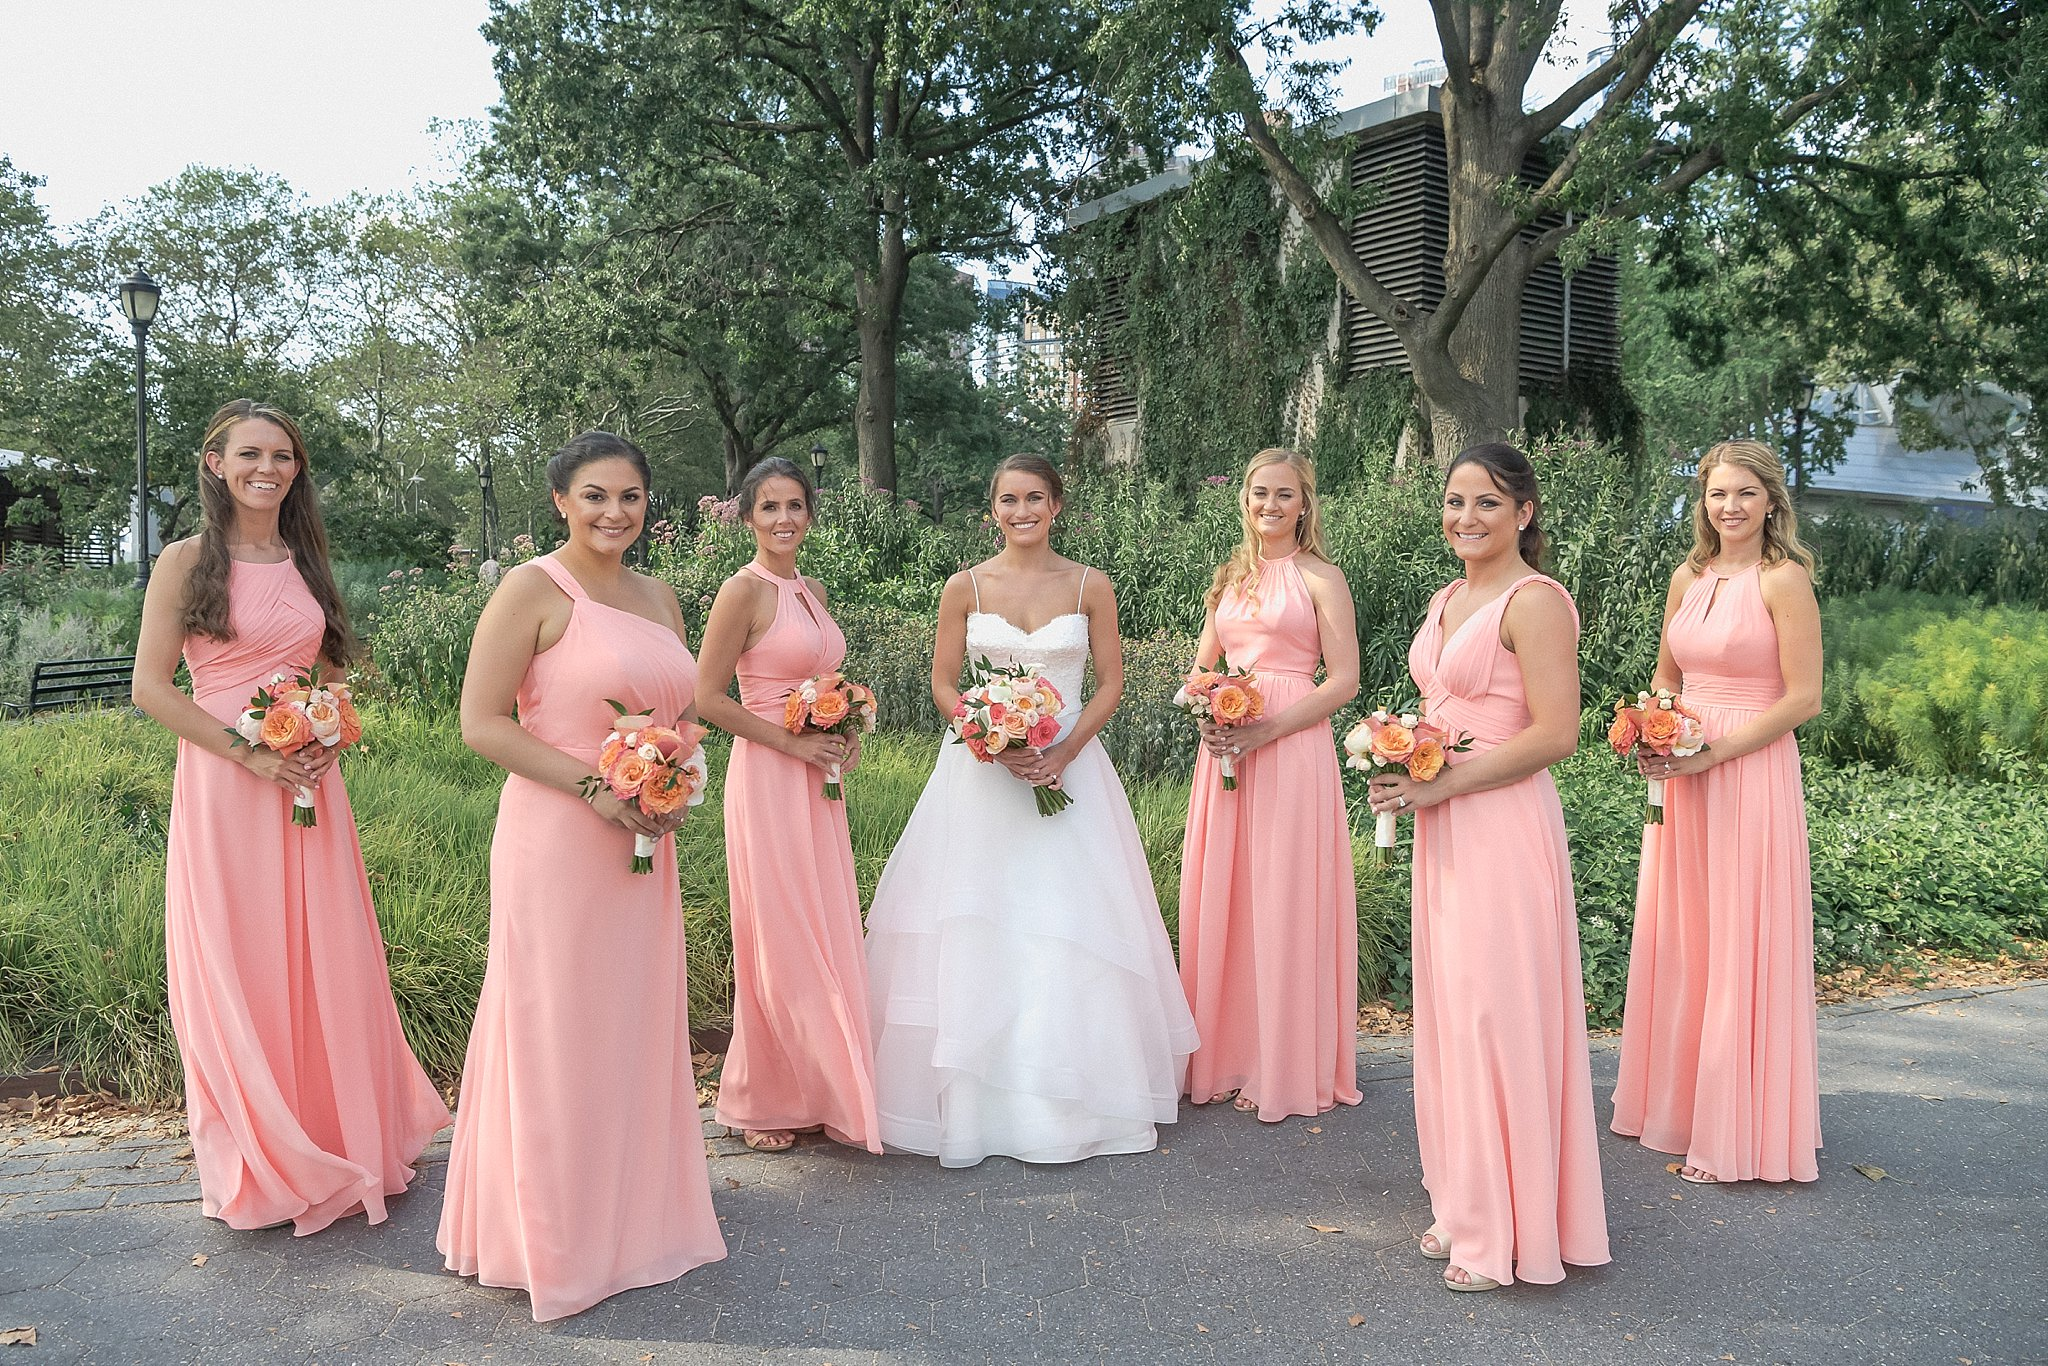 Bride and her bridesmaids Wedding Day Look